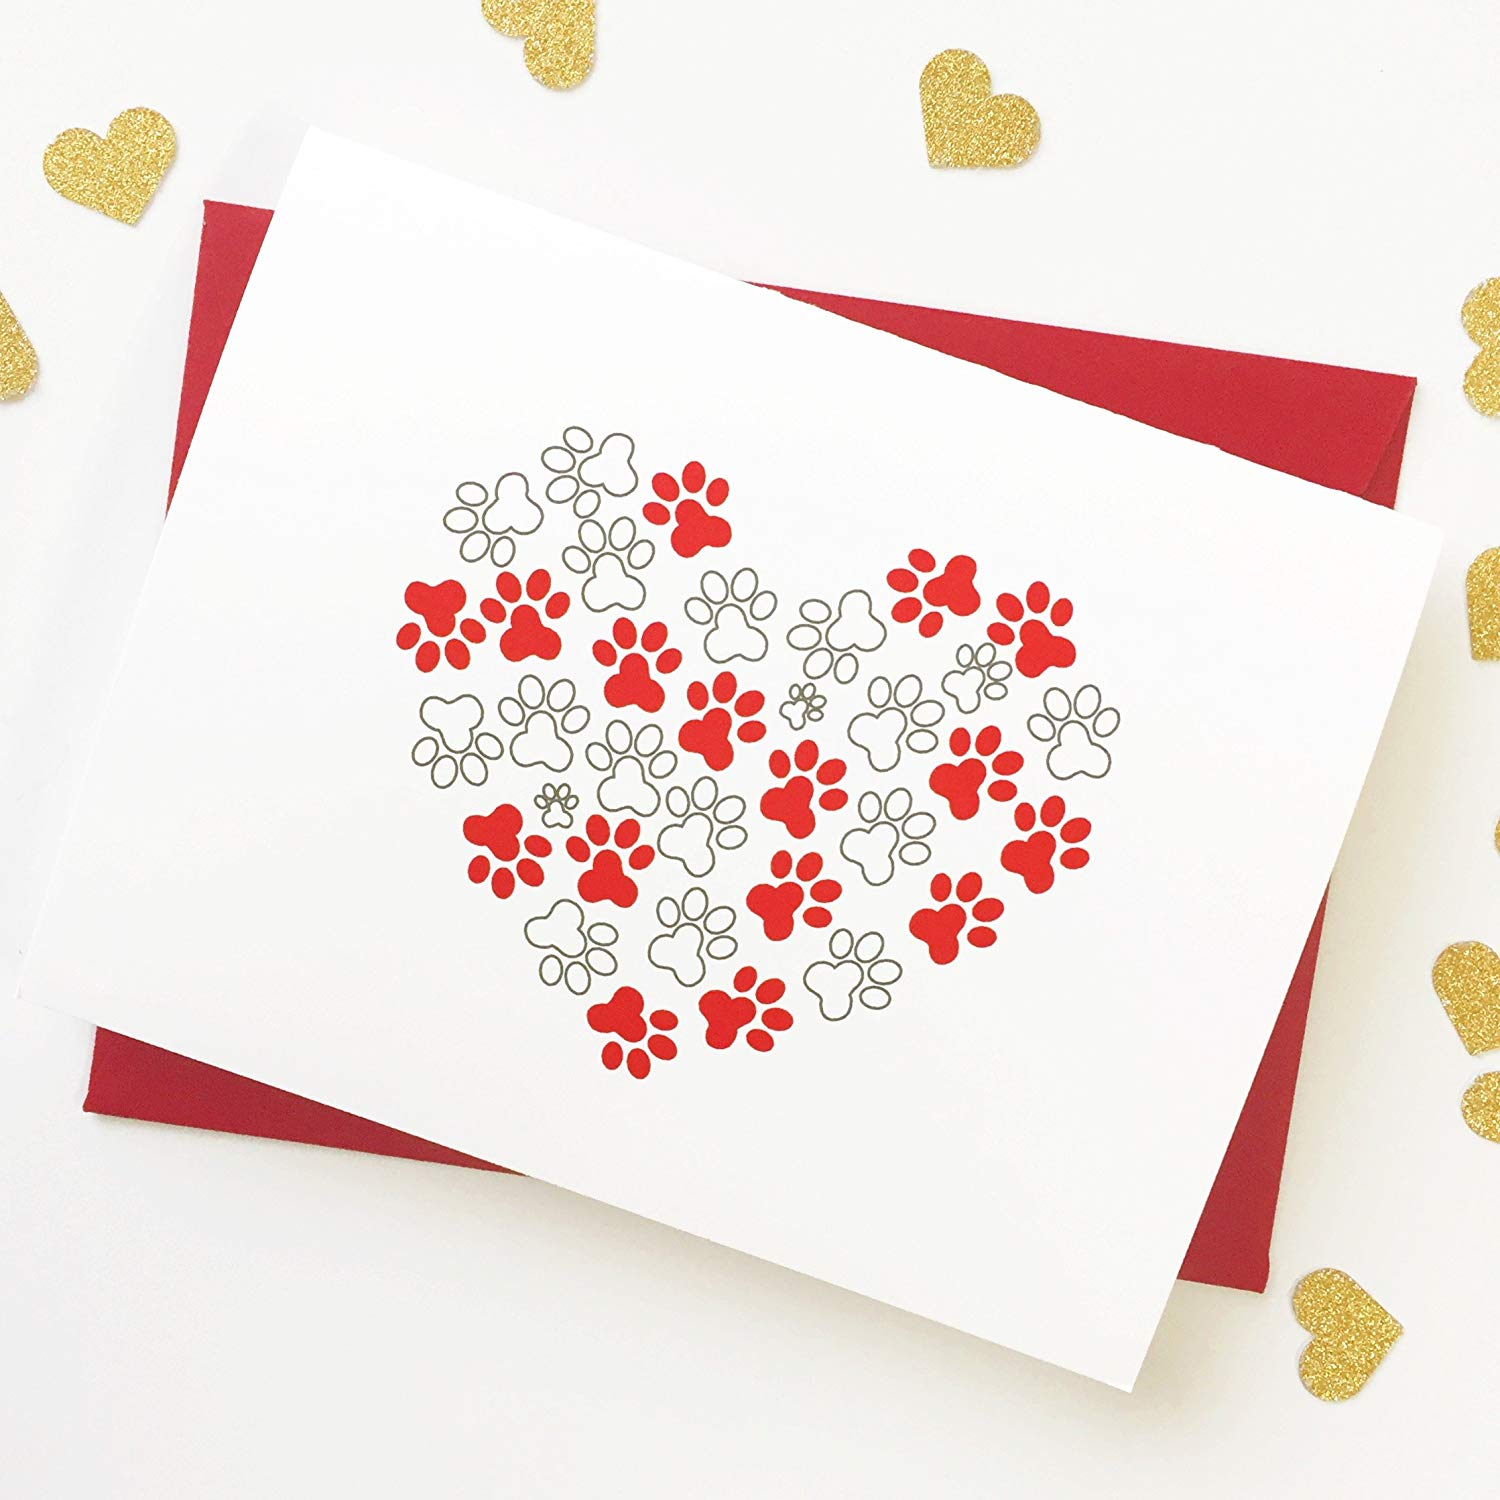 0d84441bfe691c Get Quotations · Valentine Paw Print Heart Card